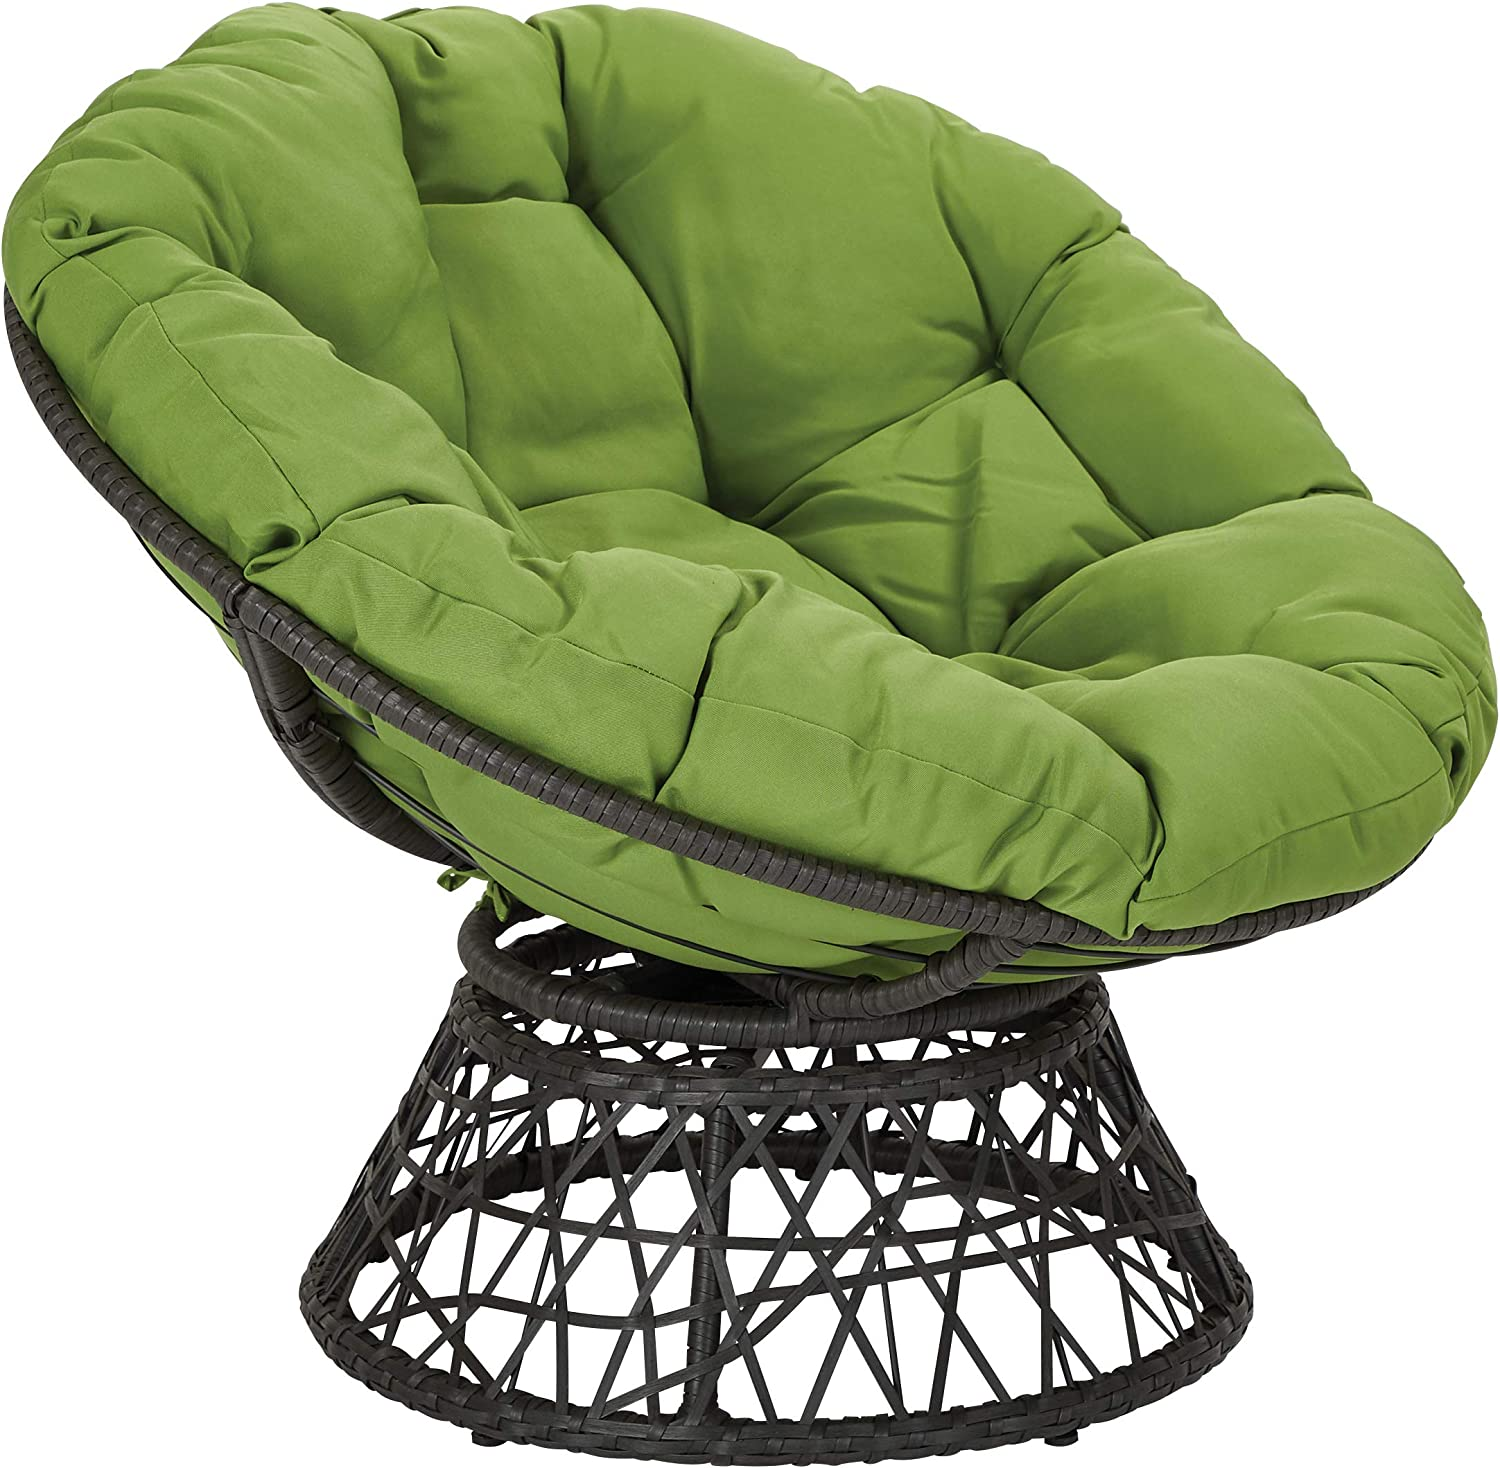 OSP Designs BF25292-6 Papasan Chair, Green